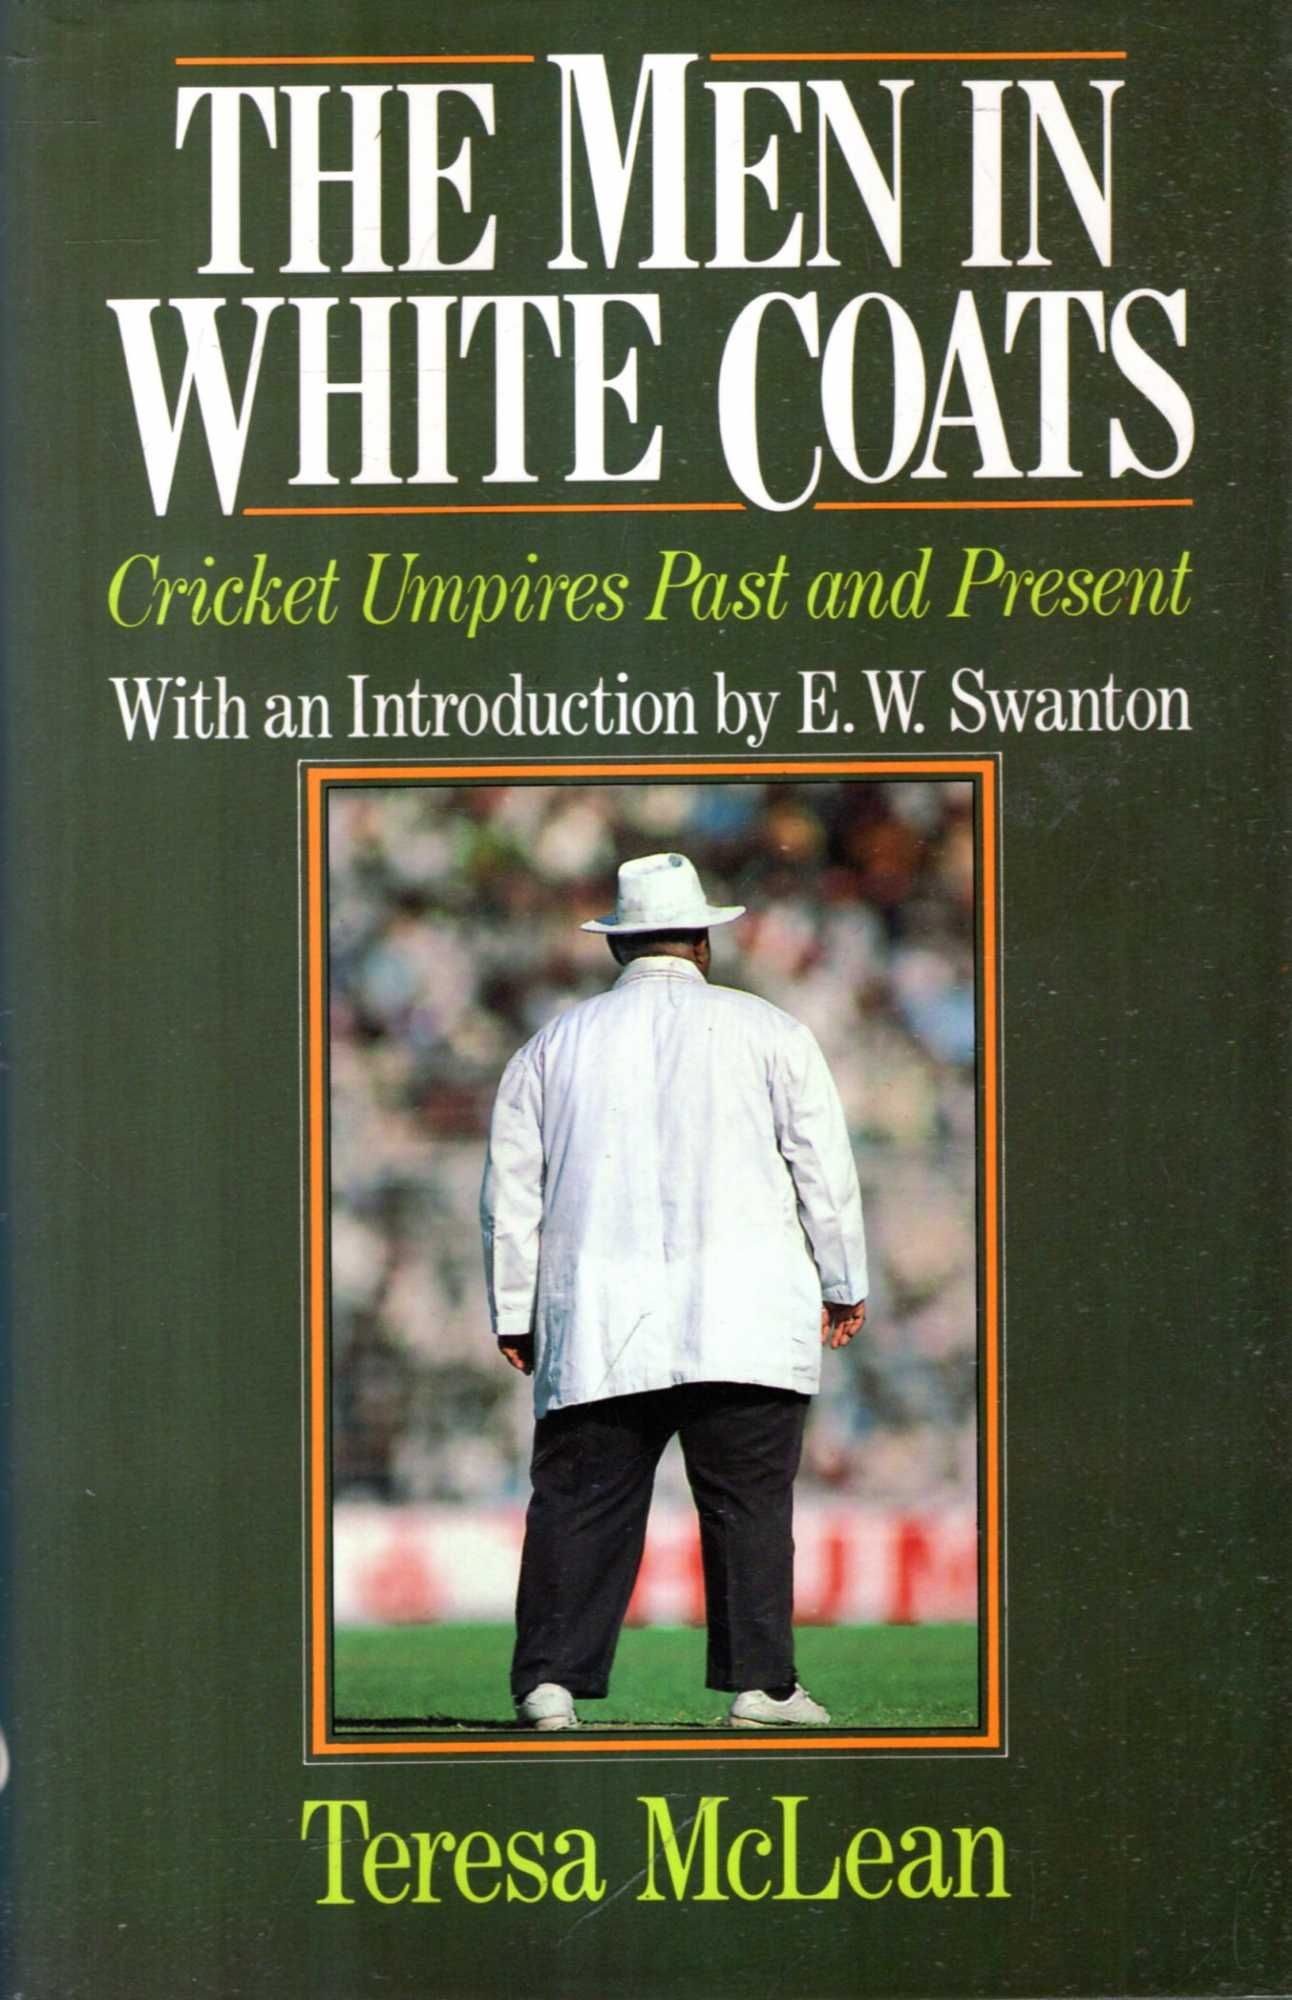 Image for The Men in White Coats: Cricket Umpires Past and Present